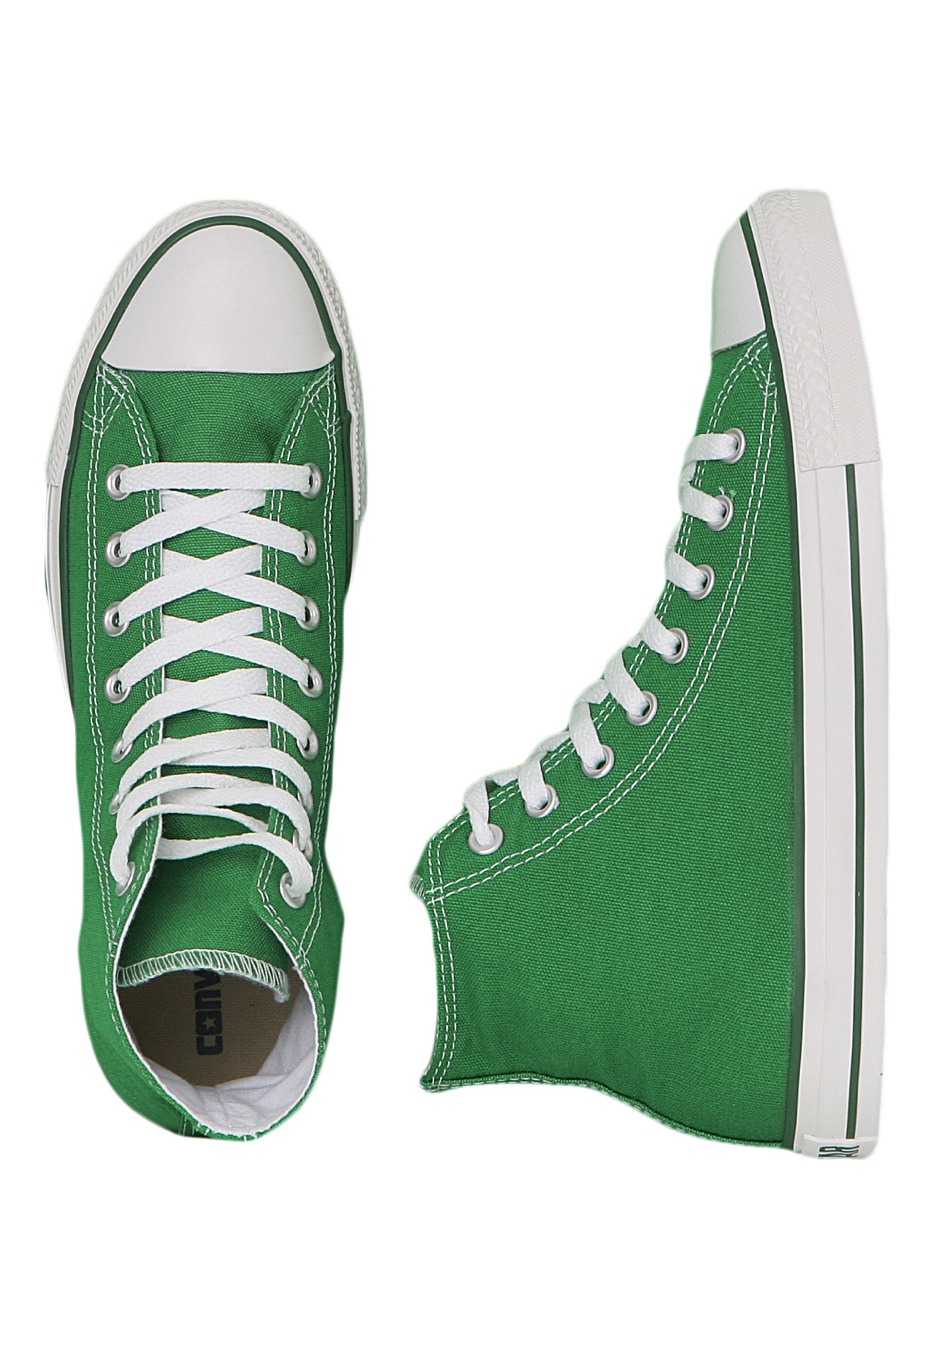 converse all hi can celtic green shoes